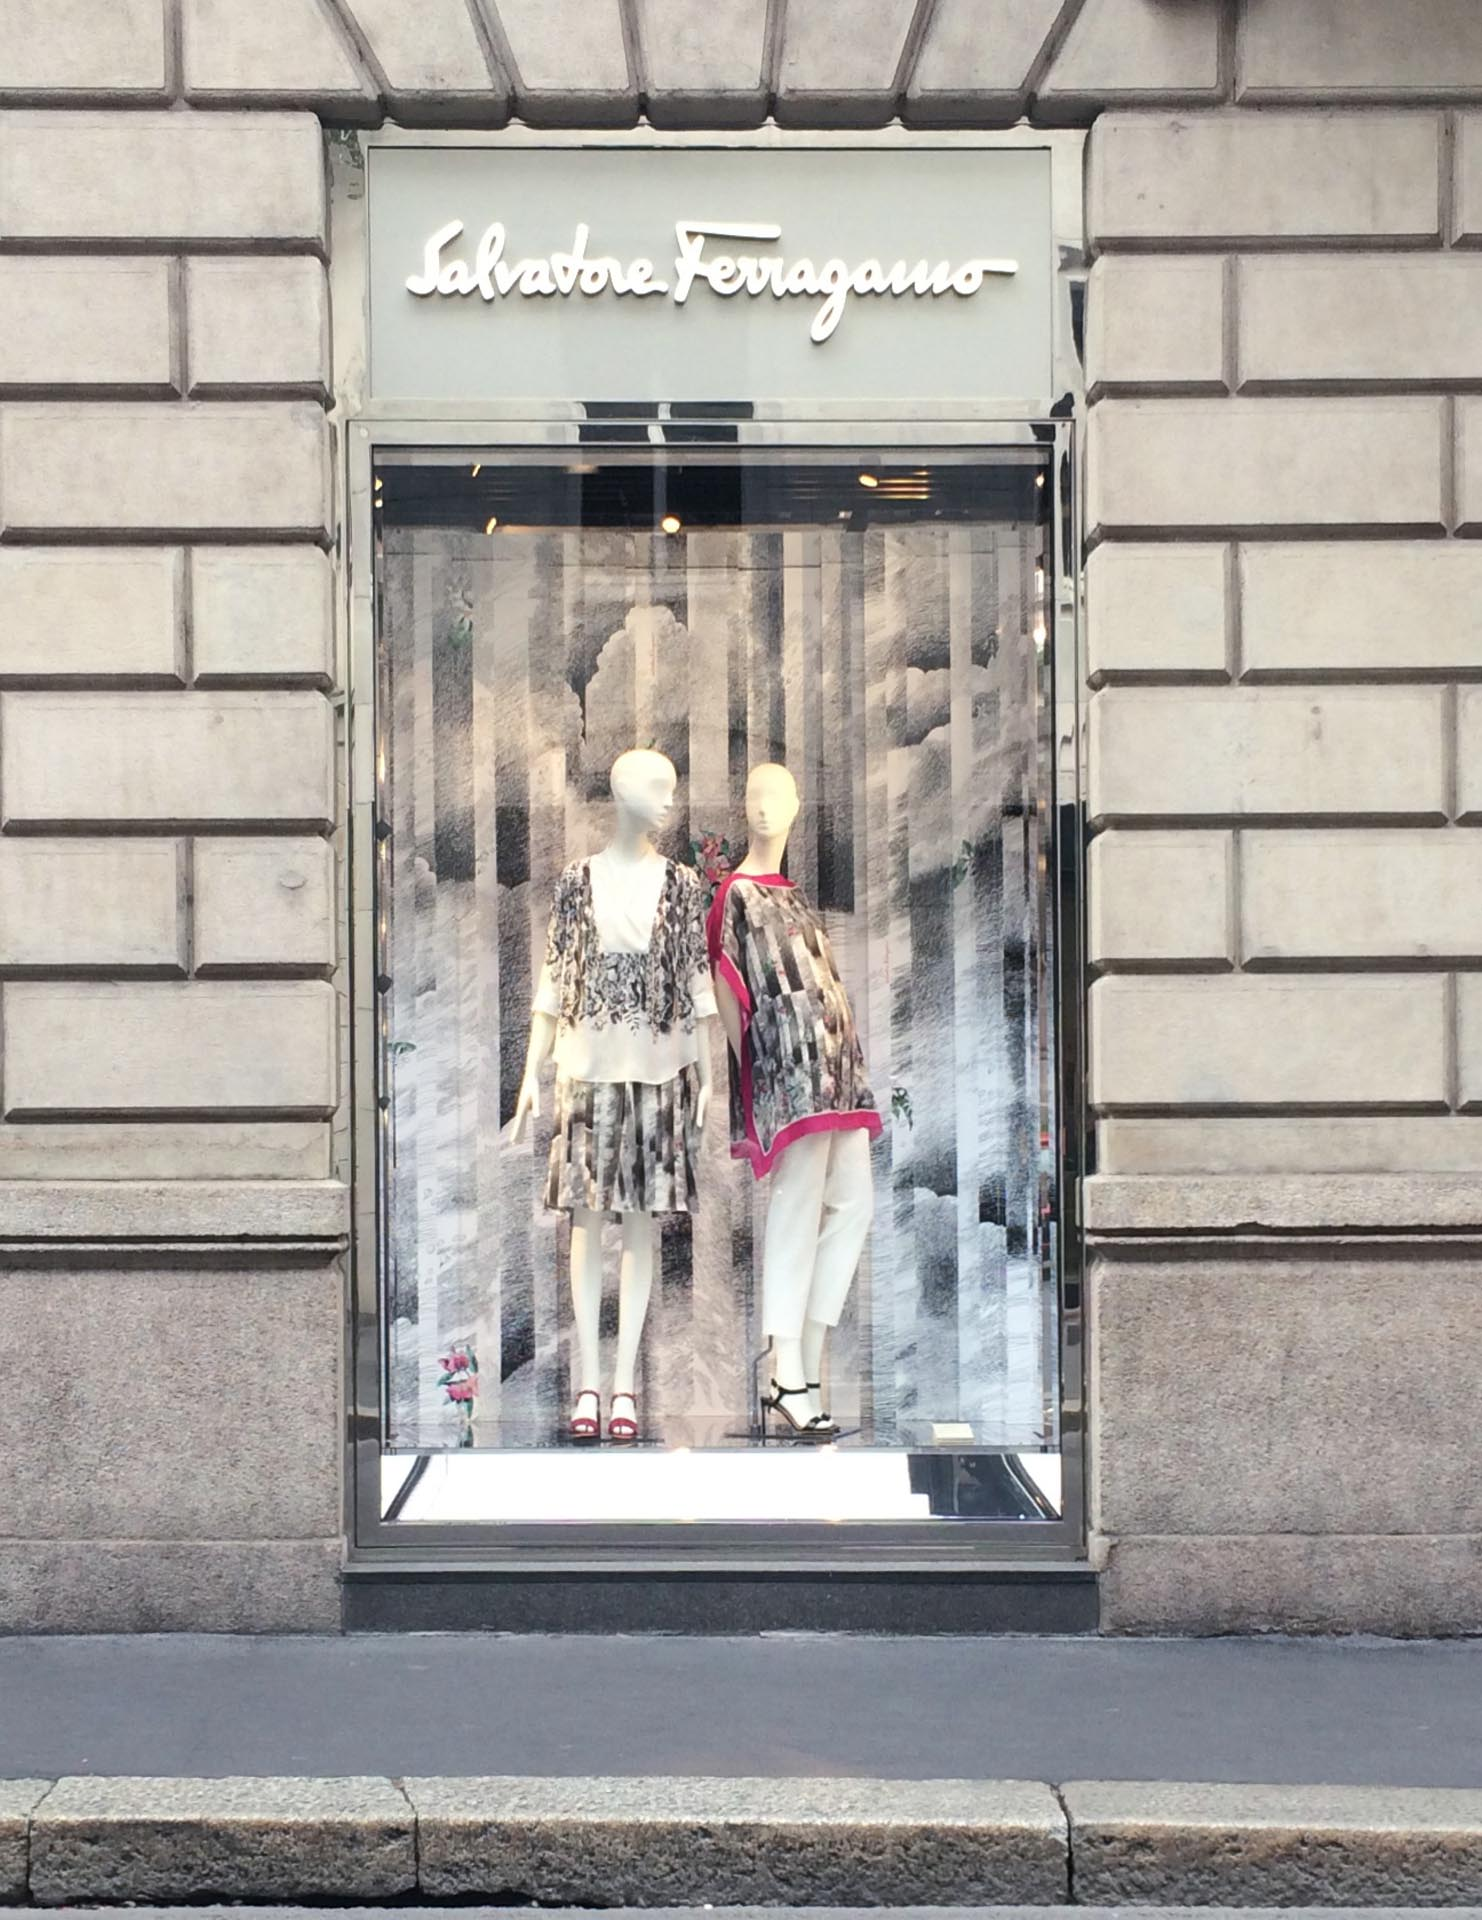 Capsule collection for Salvatore Ferragamo_Mario Trimarchi Design